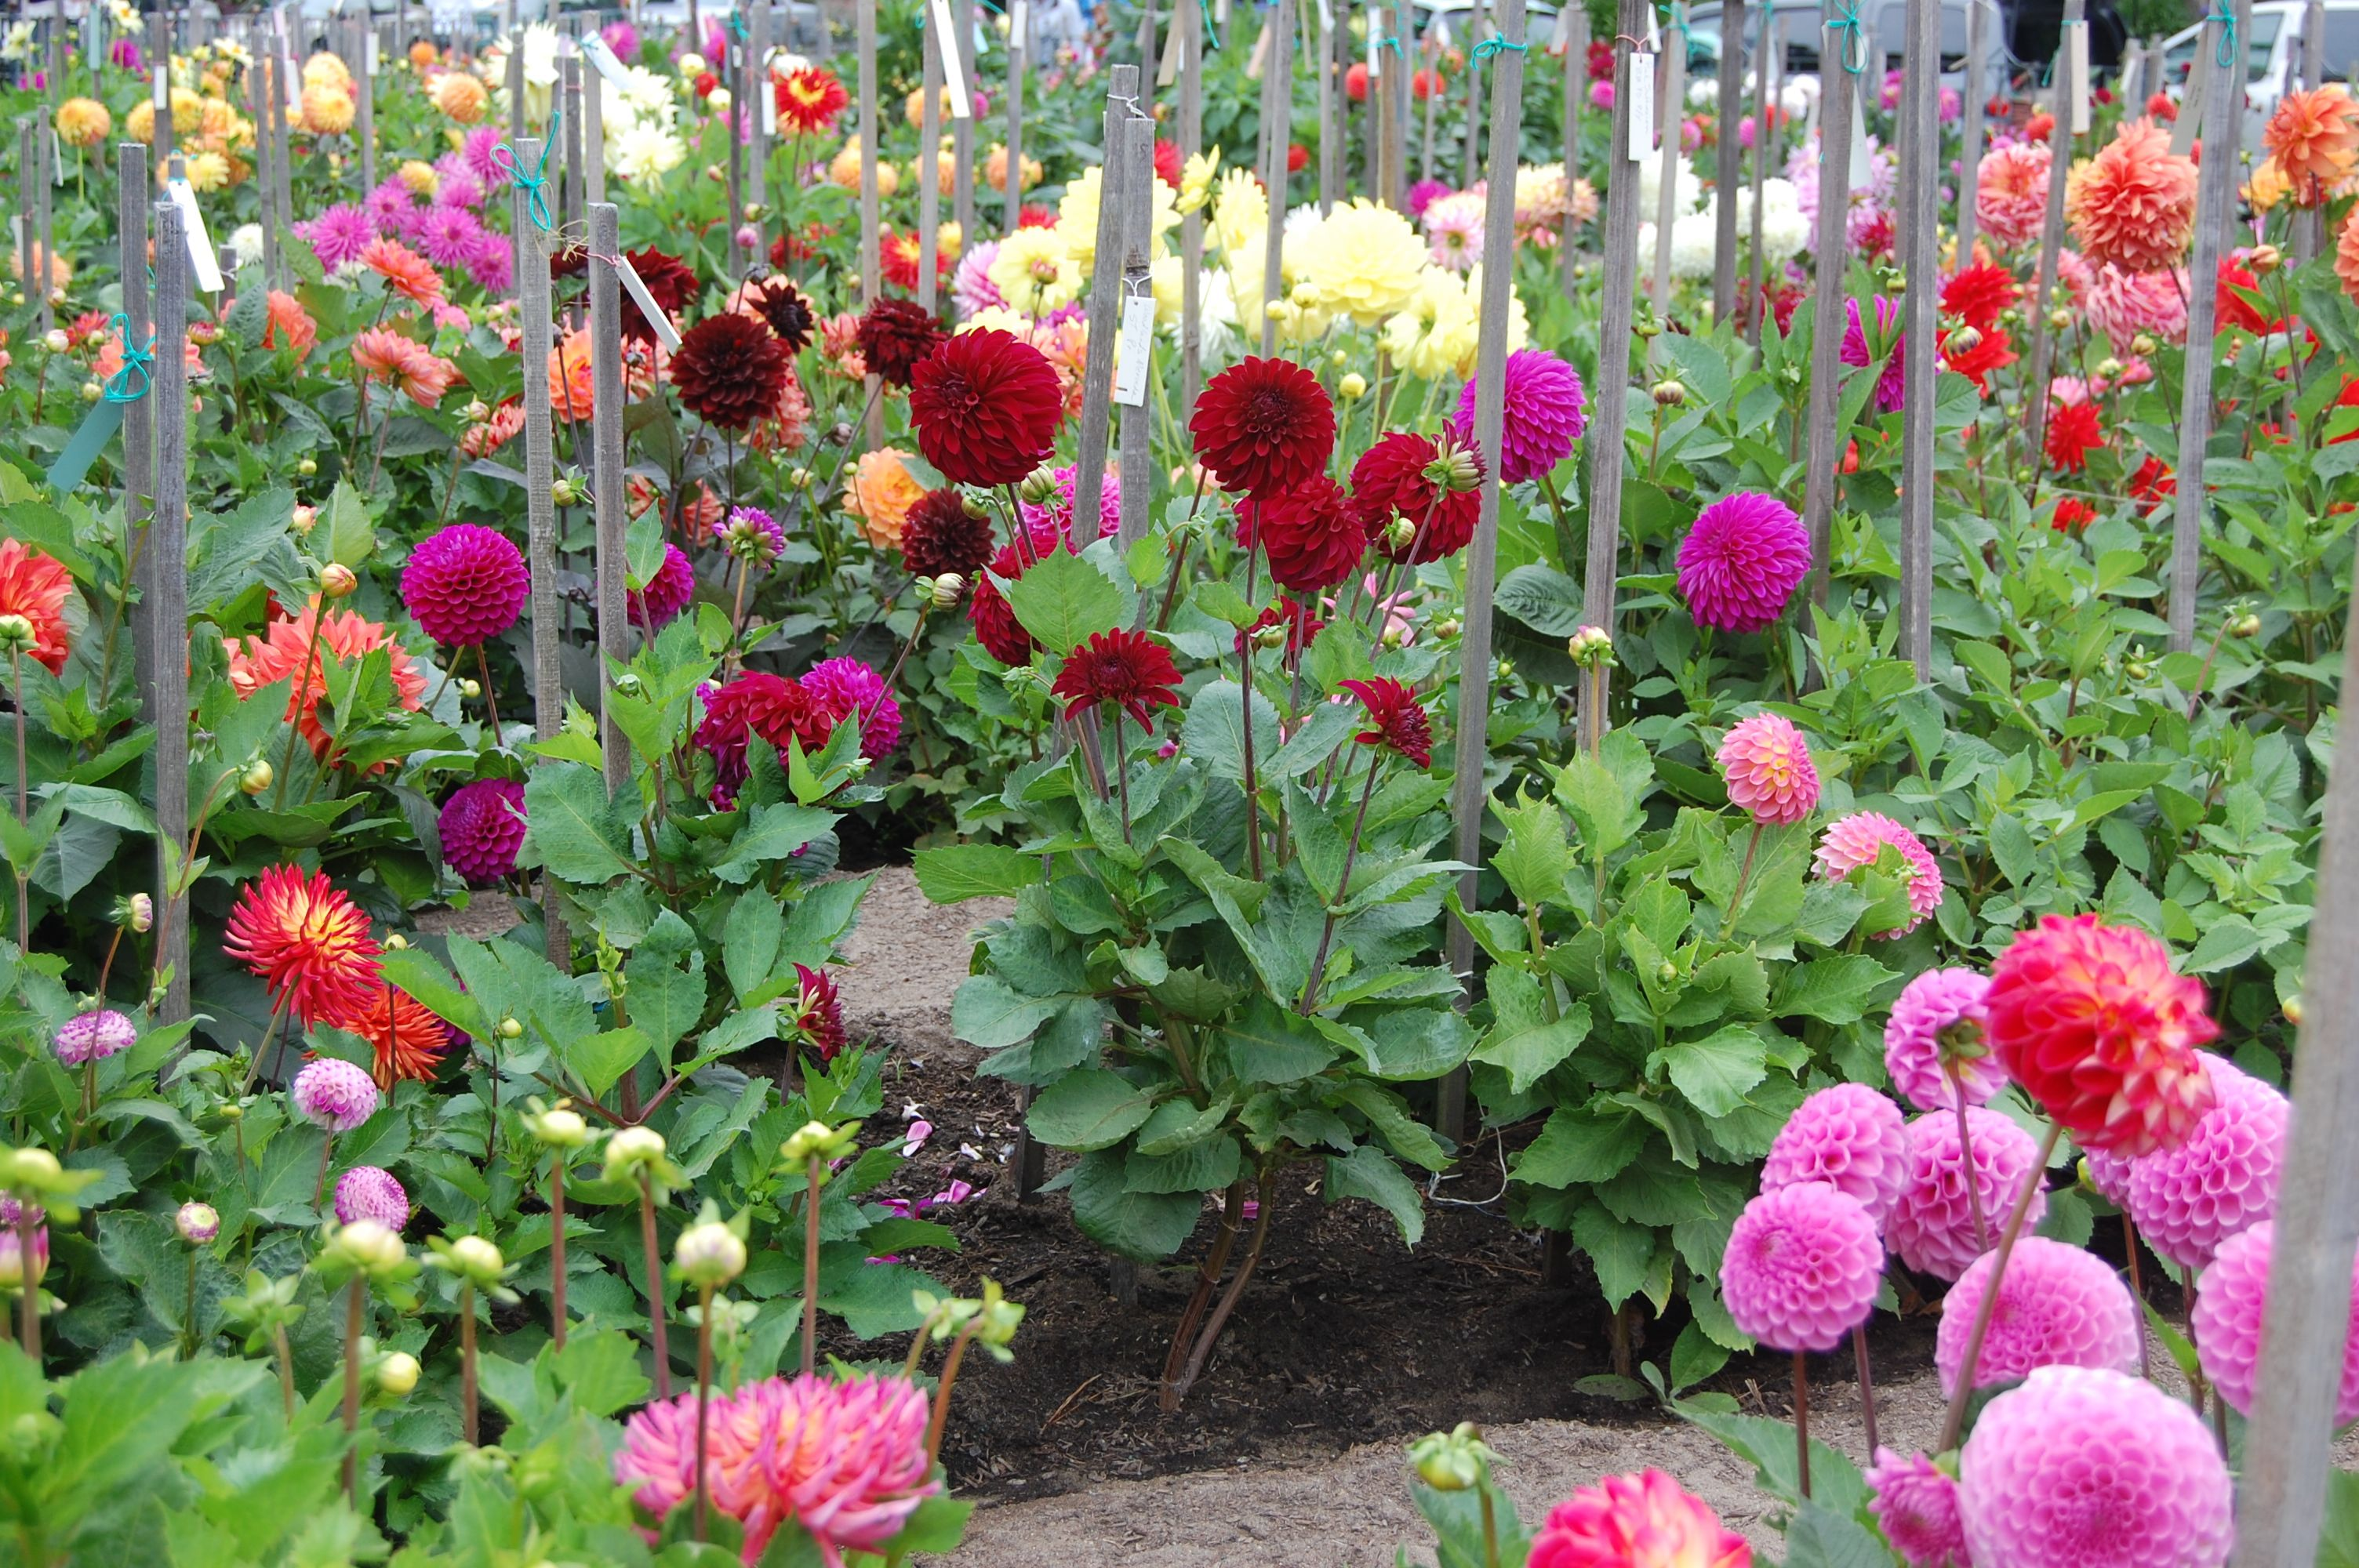 Dahlia Garden Wish I Didnu0027t Have To Work And Could Spend All Day In The  Garden!